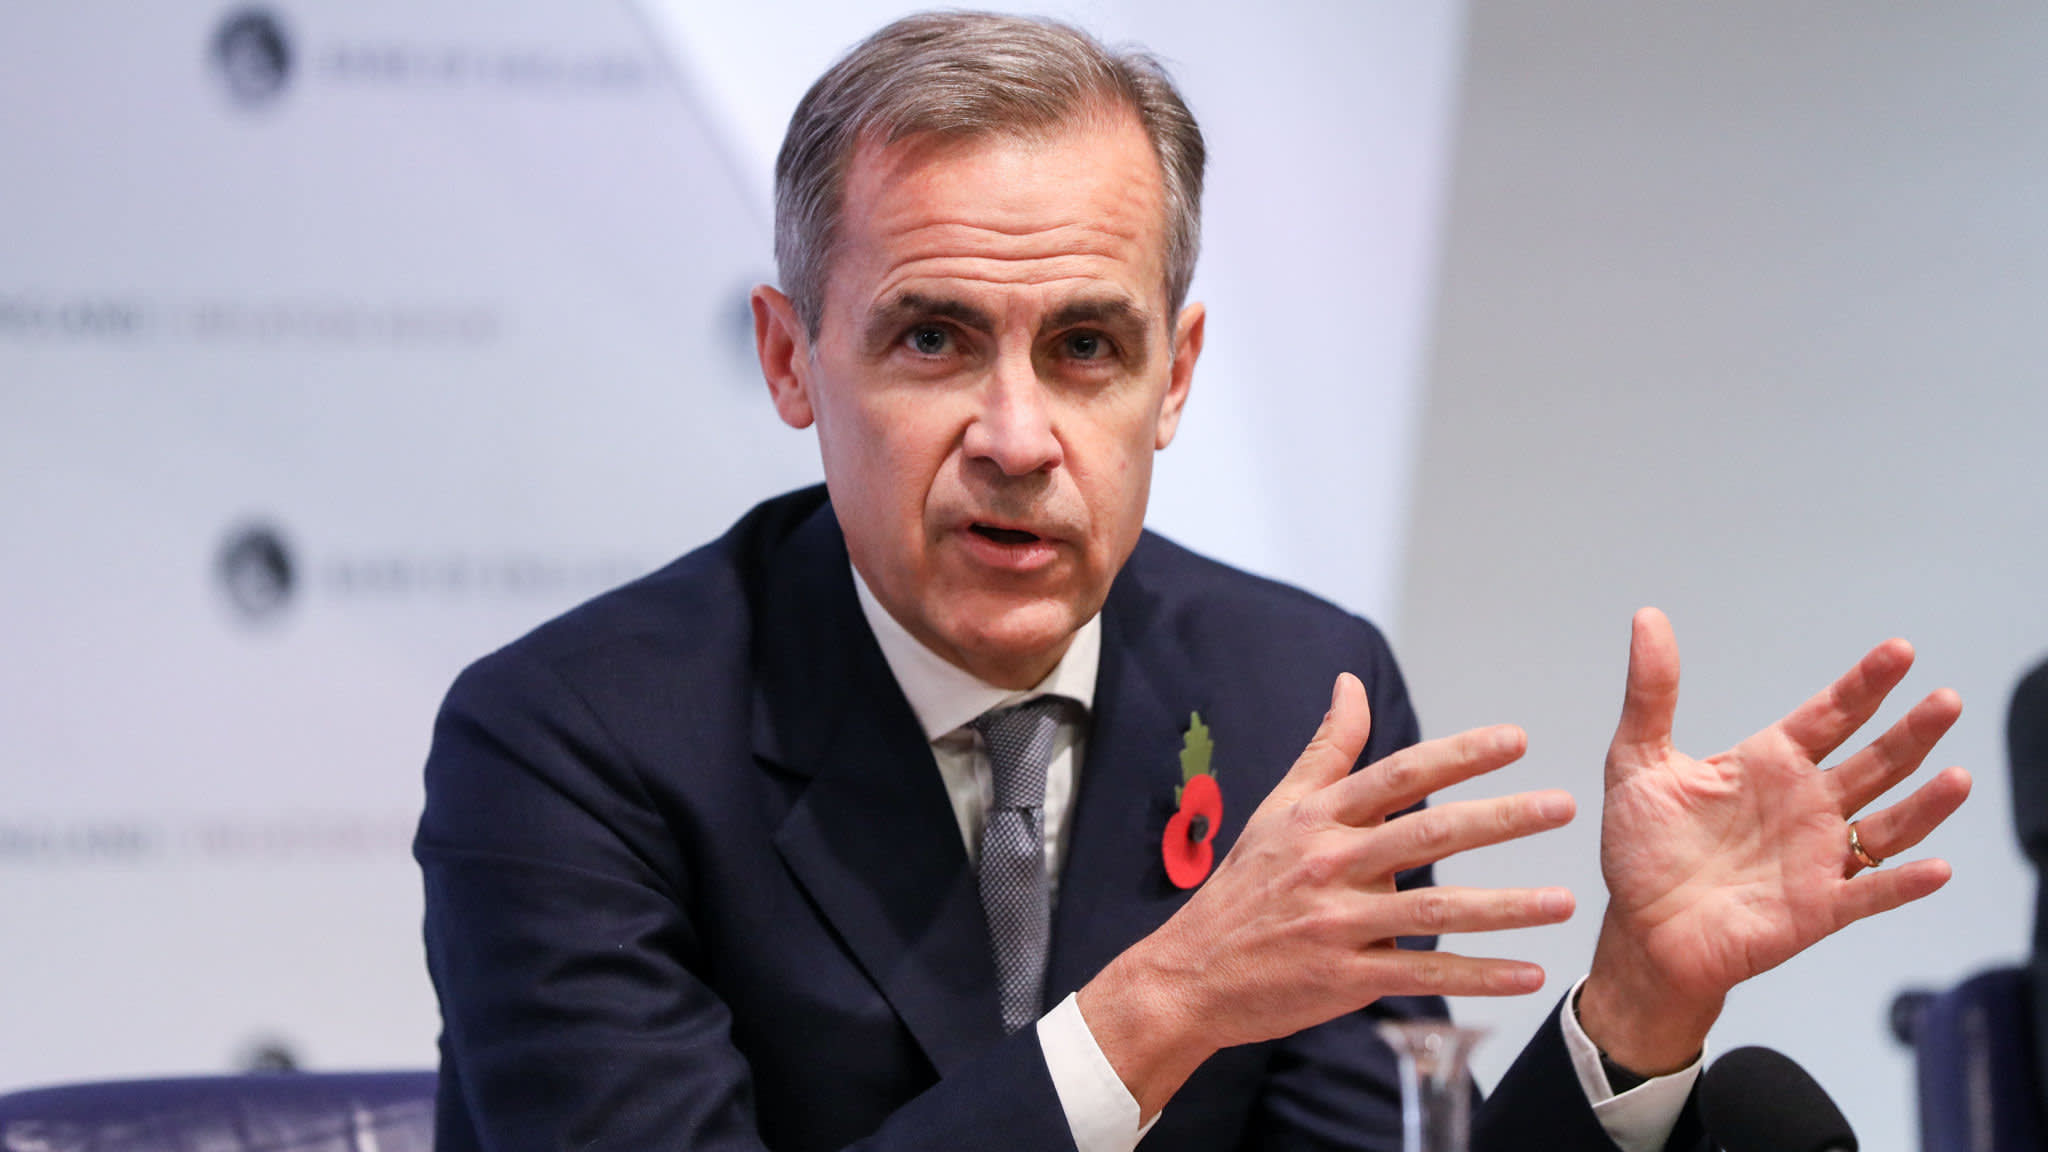 BoE signals faster pace of interest rate rises under an orderly Brexit